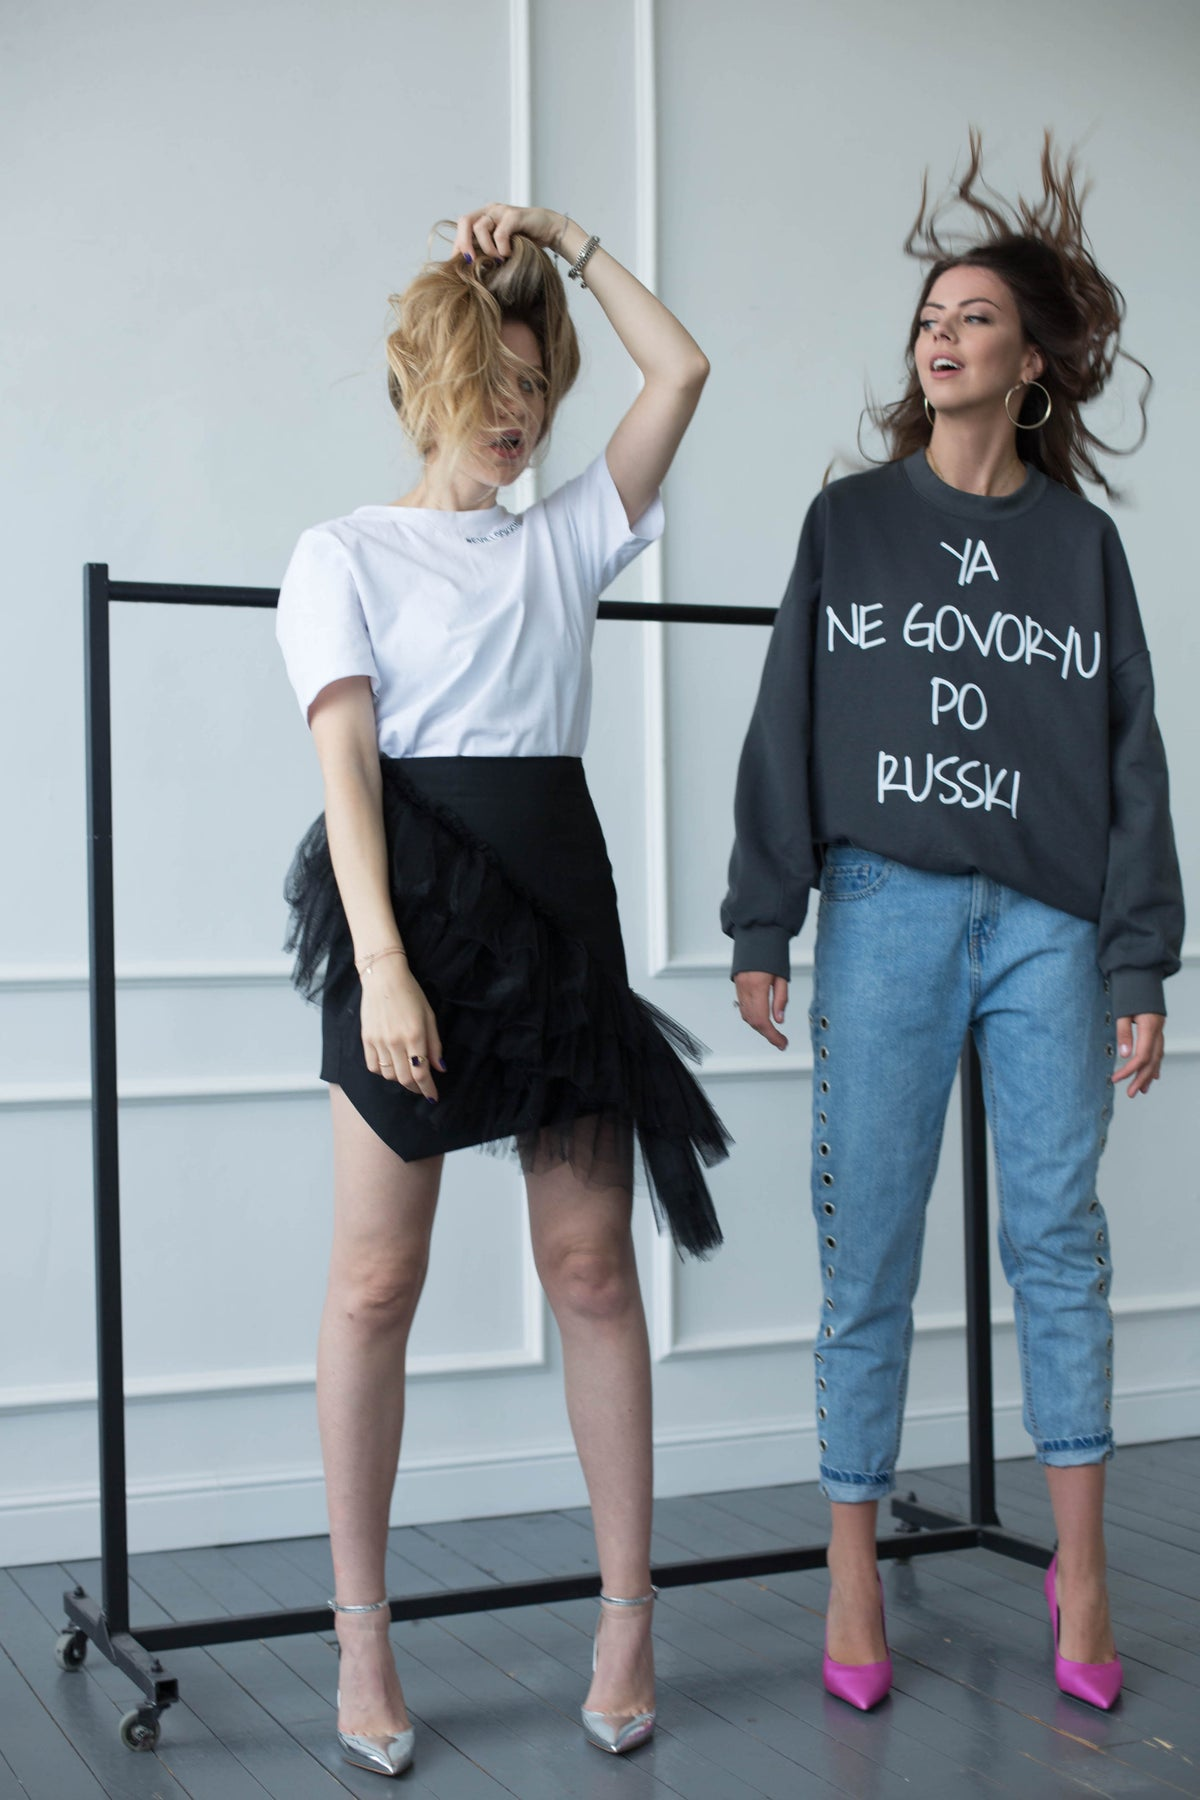 le-slap-co-founders-russki-oversize-grey-sweater-cotton-lookbook.jpg